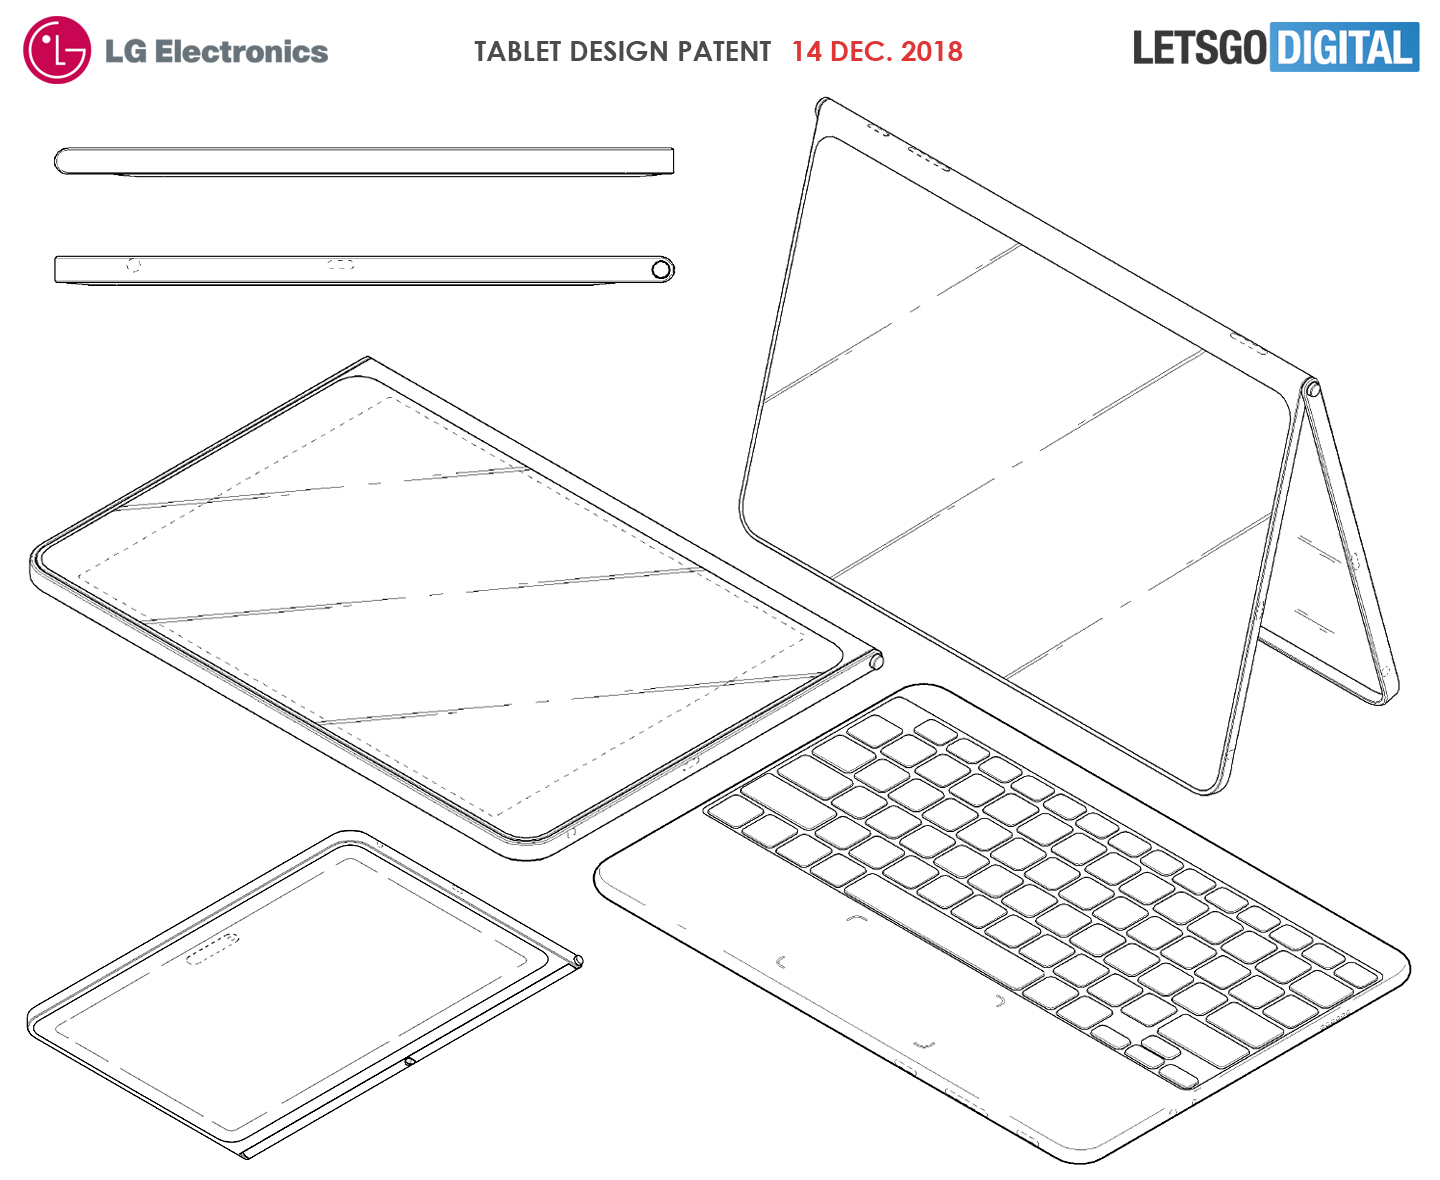 lg tablet keyboard lg may release a cool tablet with edge to edge screen and wireless